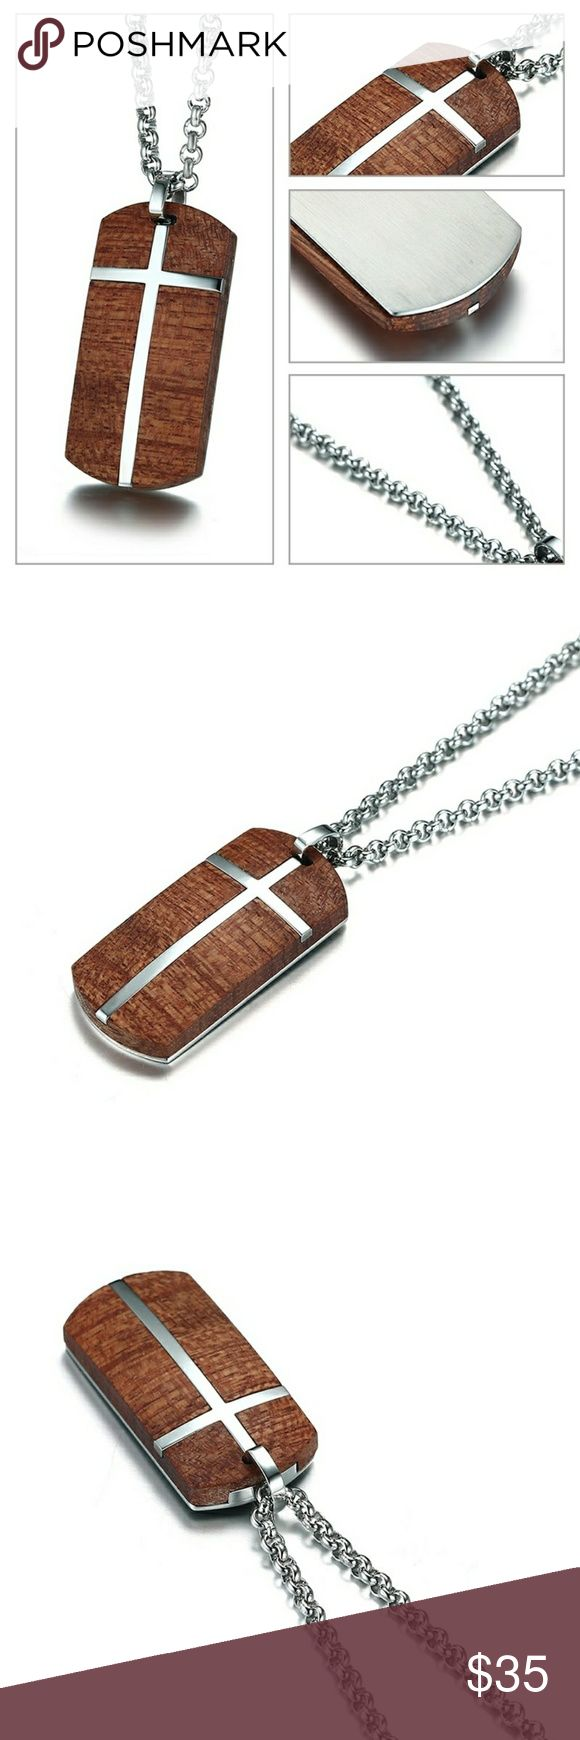 Rosewood Christian Cross Pendant Necklace High Quality Rosewood finish with a 22-44 inch Stainless Steel Chain Jewelry Necklaces